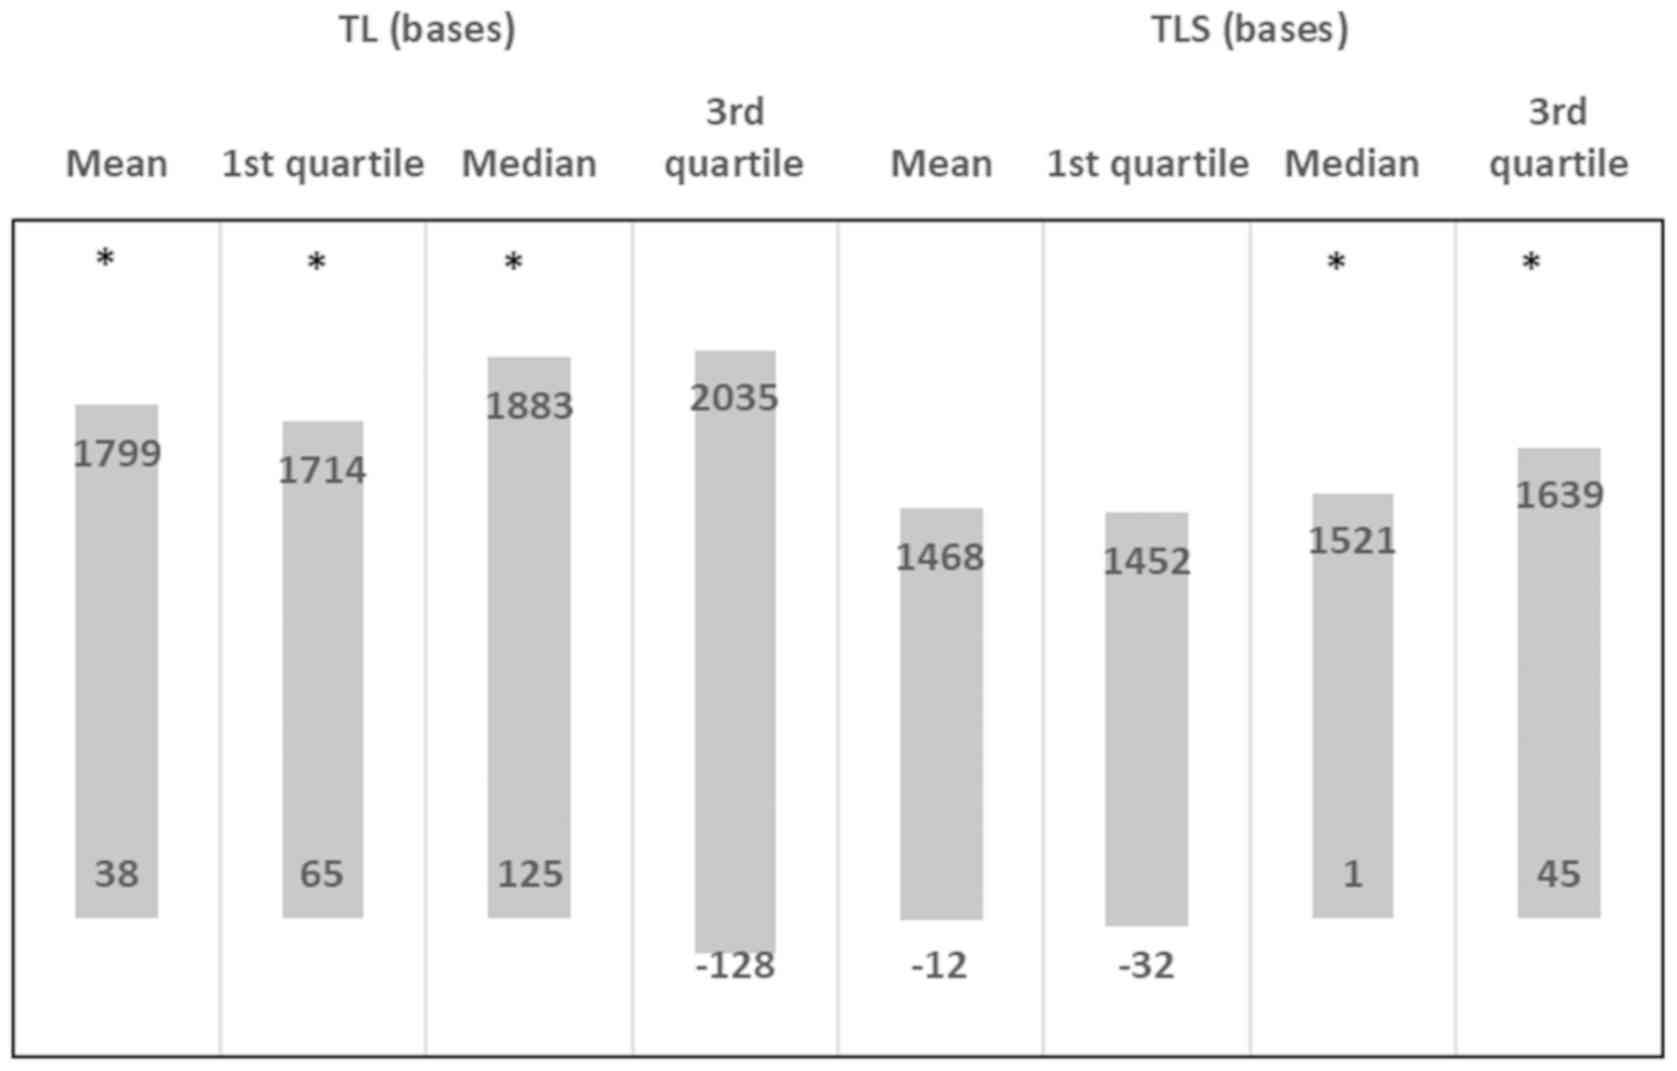 Association of nutraceutical supplements with longer telomere length